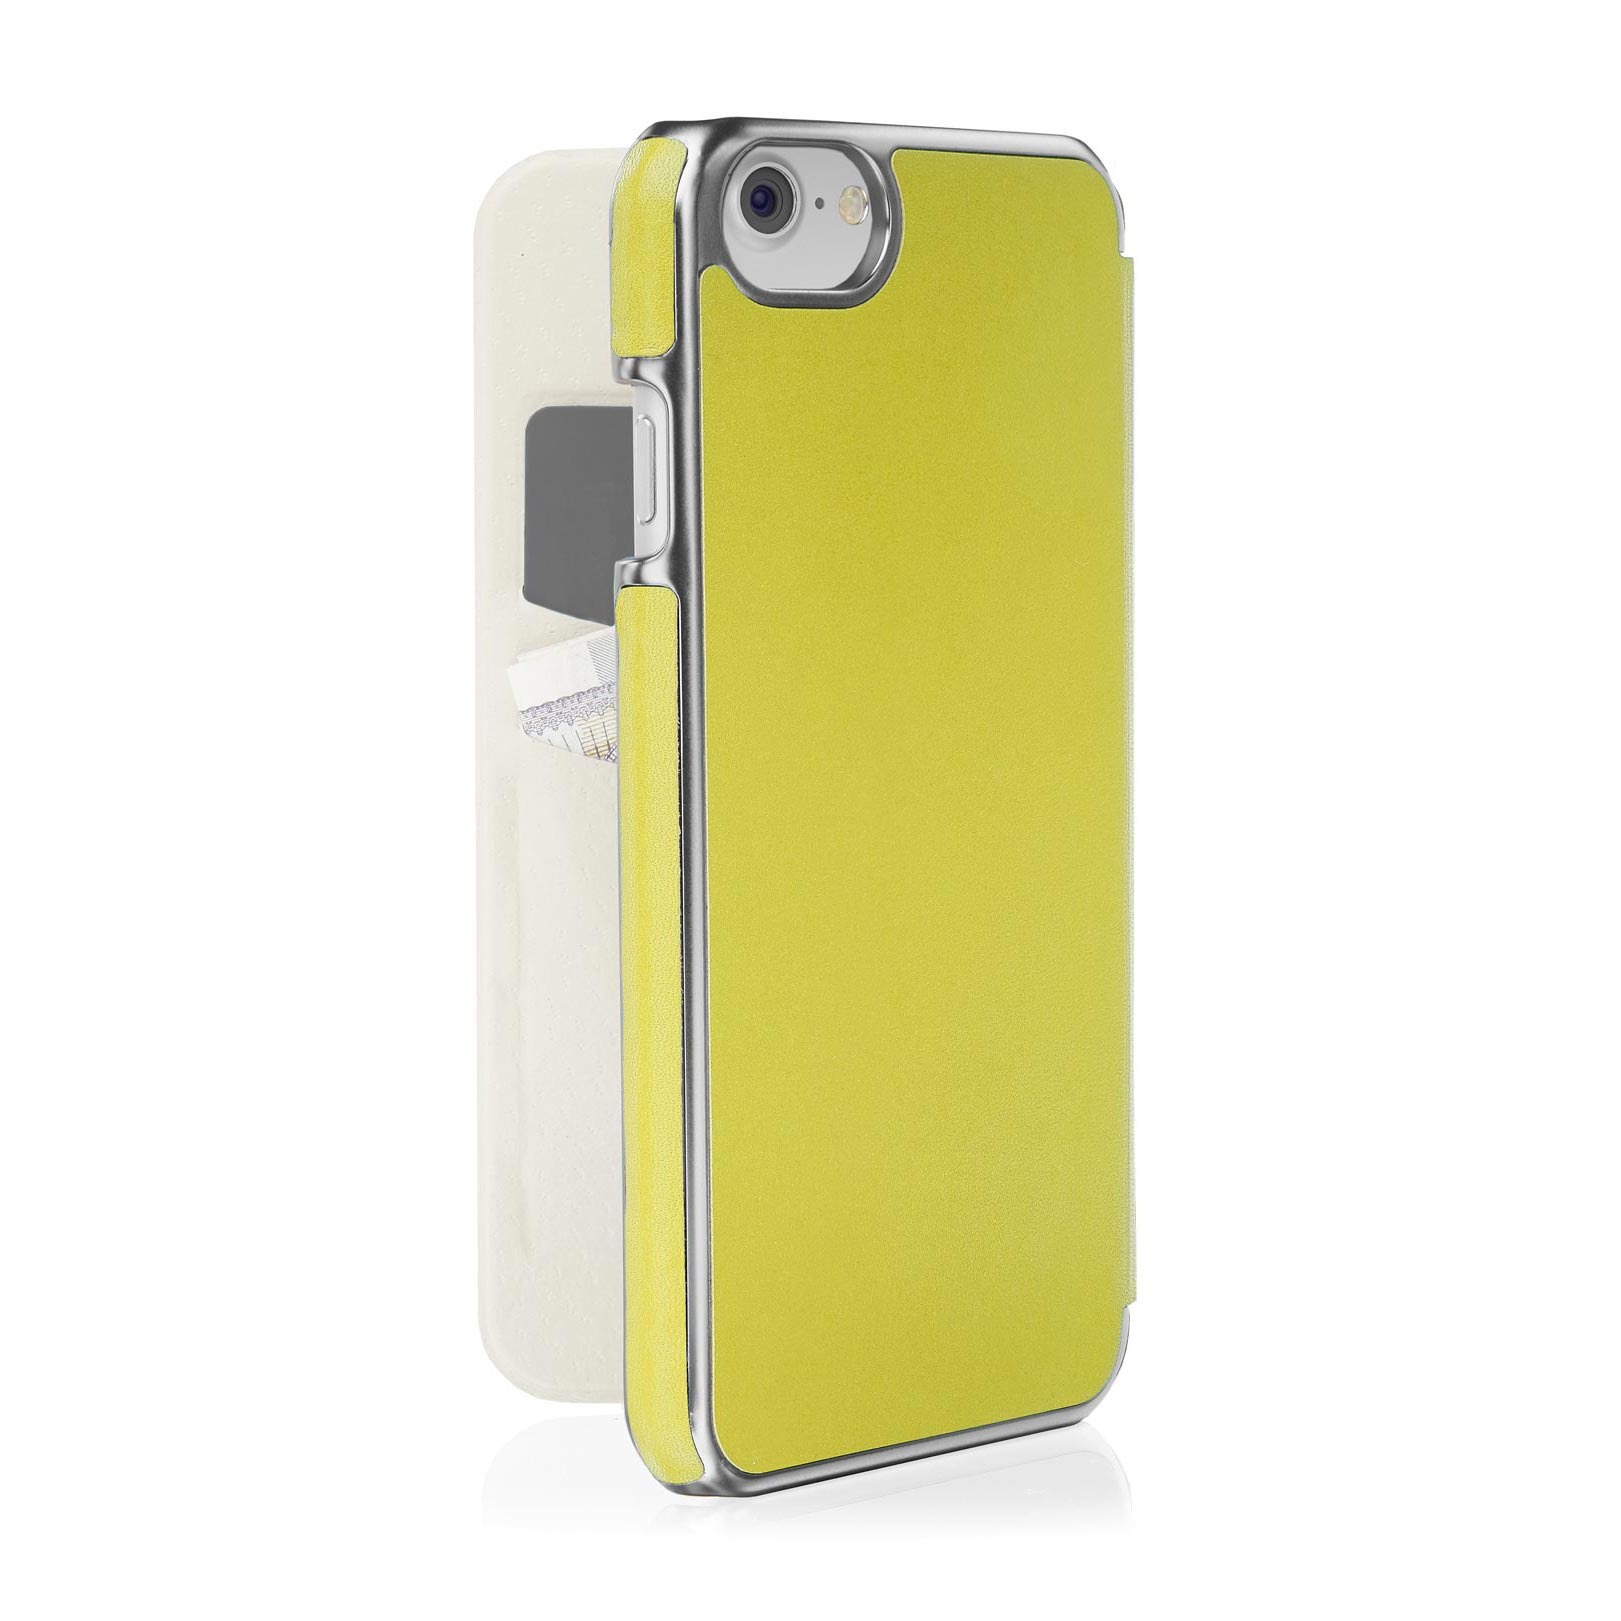 uk availability df31c e6eb5 iPhone 8 Slim Wallet Case - Pistachio Yellow (Also Fits iPhone 6/6S/7)